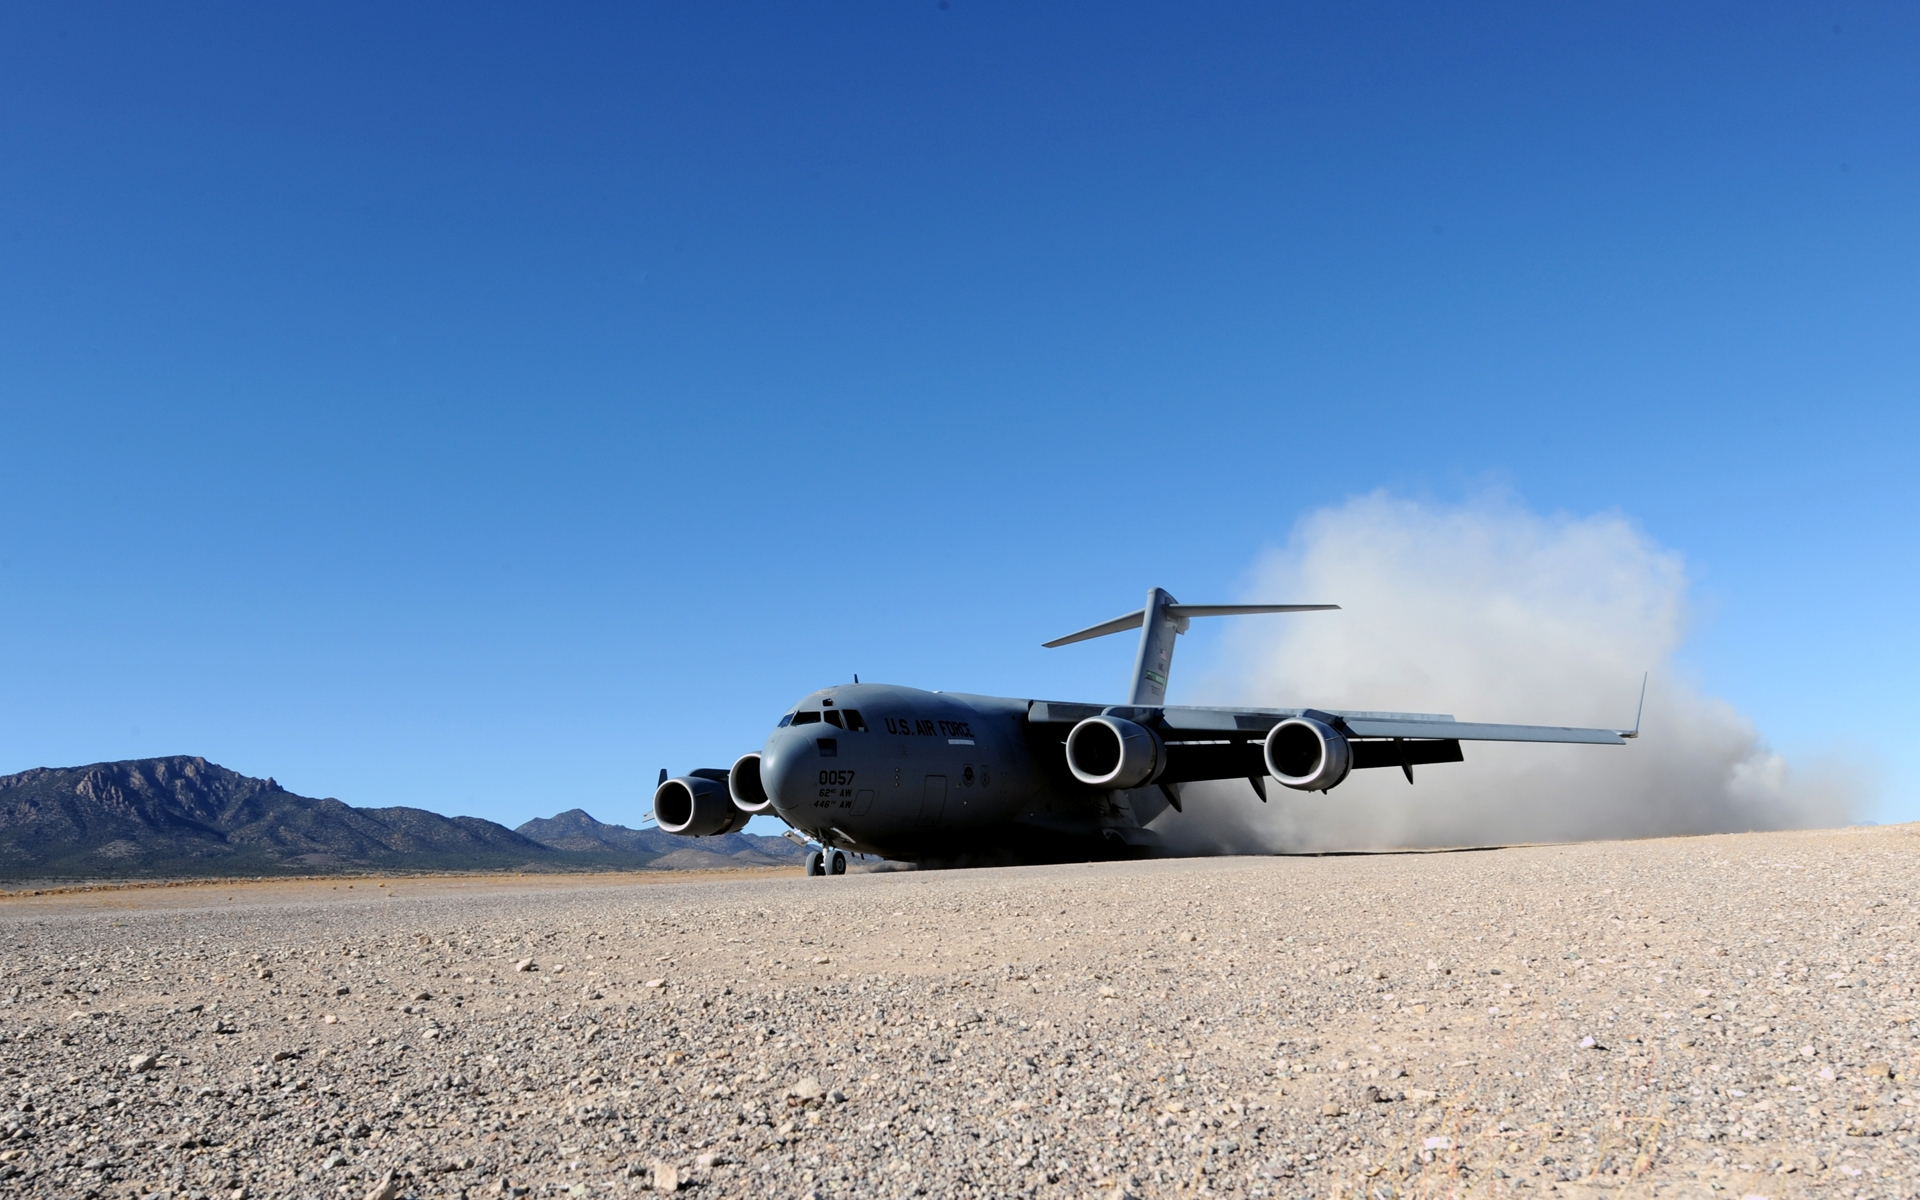 Full 3d Wallpapers Free Download 26 Excellent Hd C17 Globemaster Wallpapers